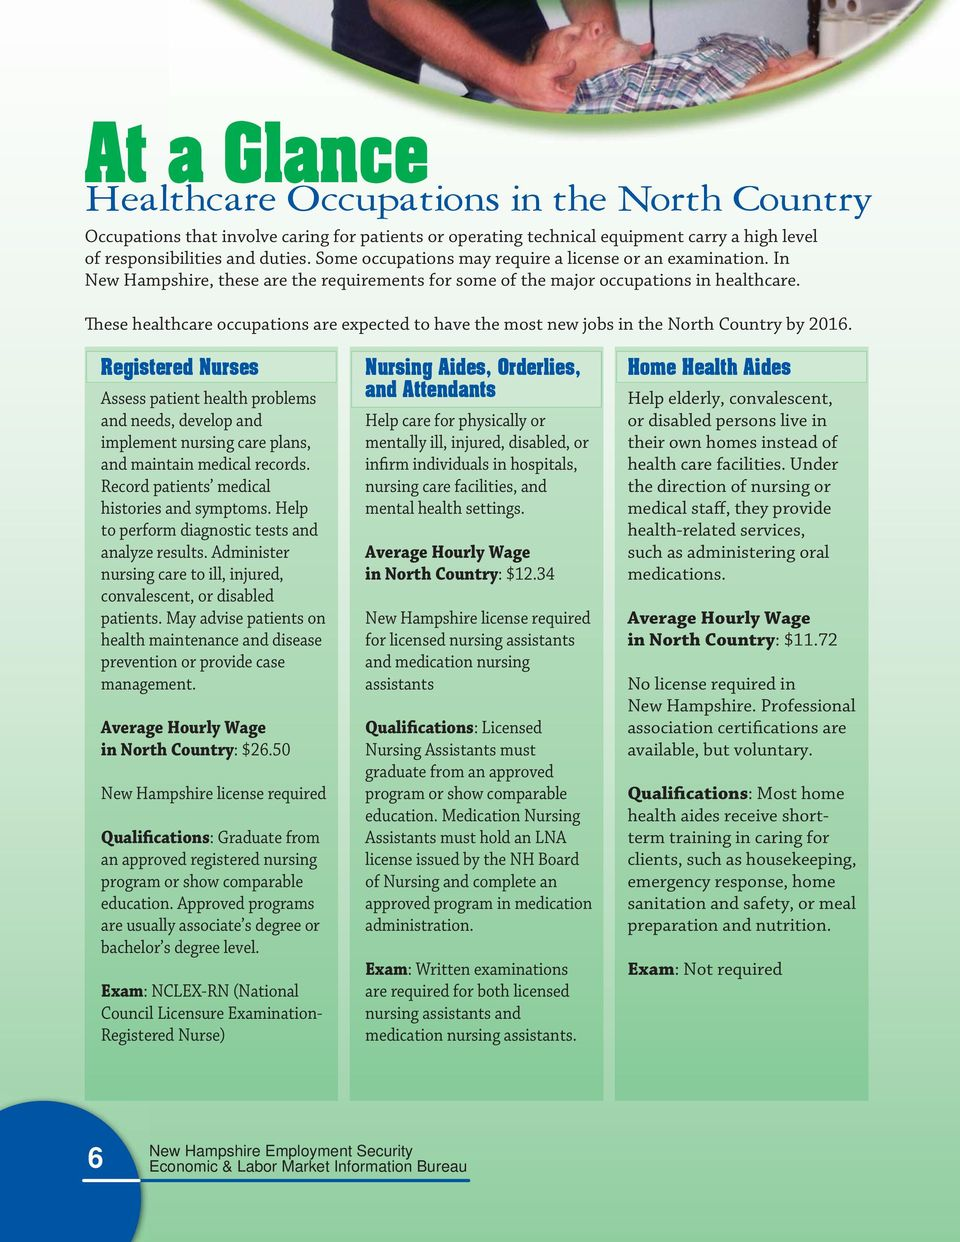 These healthcare occupations are expected to have the most new jobs in the North Country by 2016.